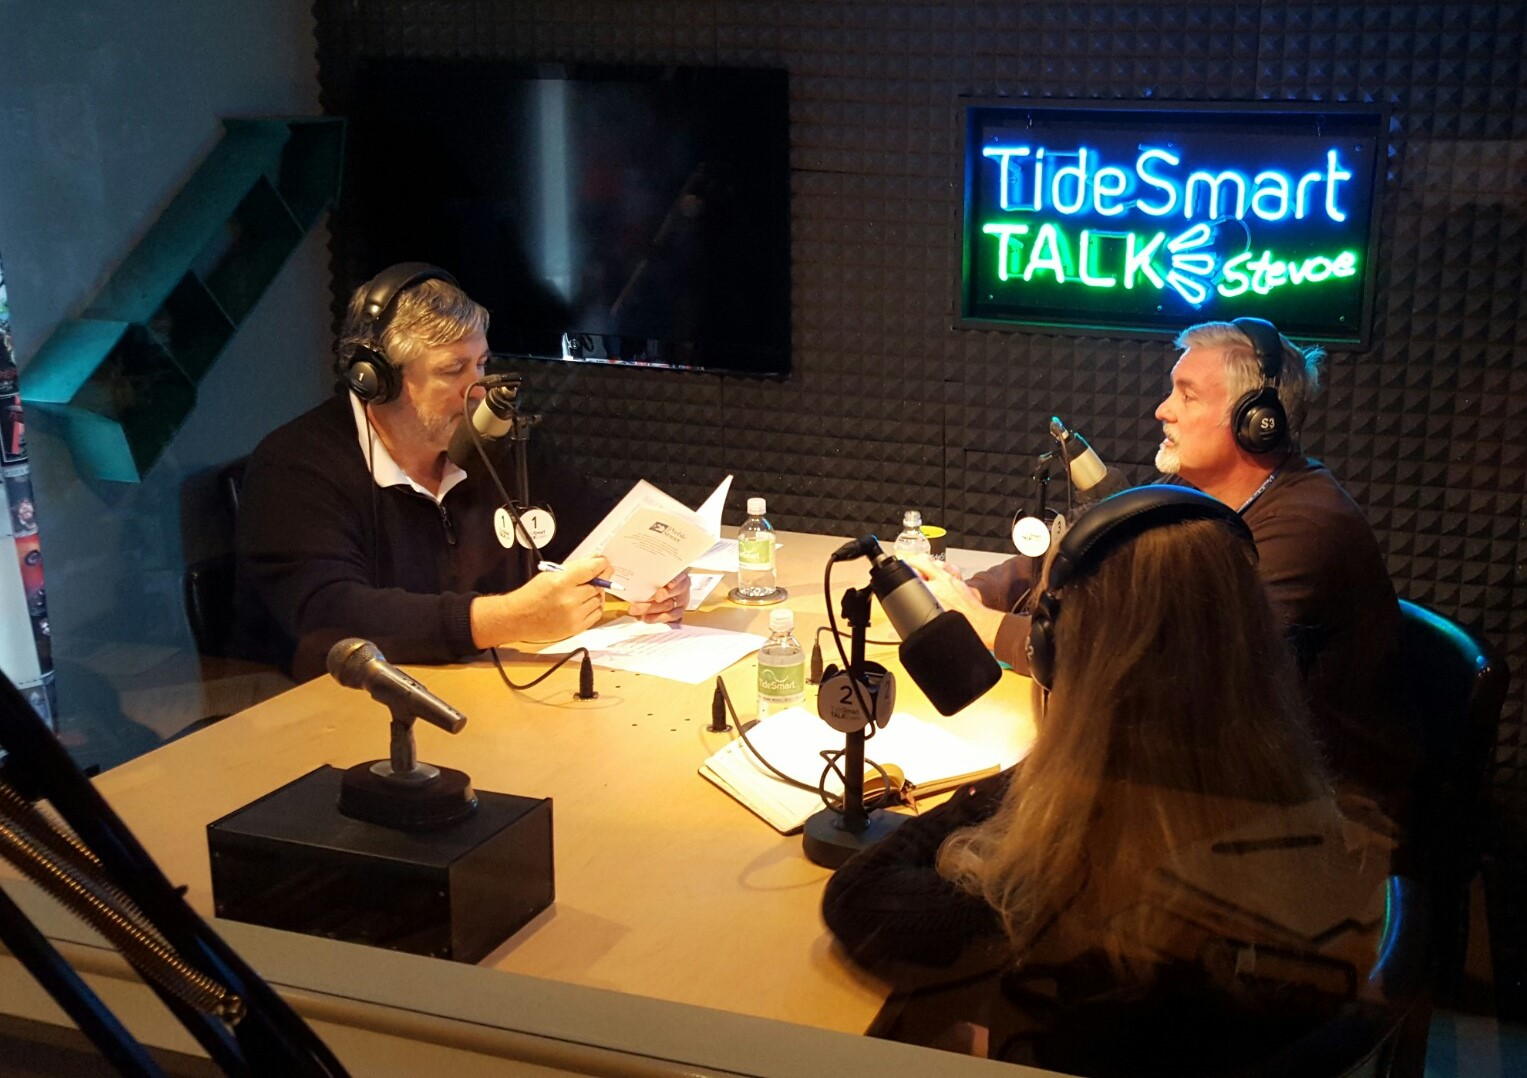 Host of TideSmart Talk with Stevoe, Steve Woods, welcomed Executive Director of Preble Street, Mark Swann (at right) with Valerie Hamilton of Promerica Health.